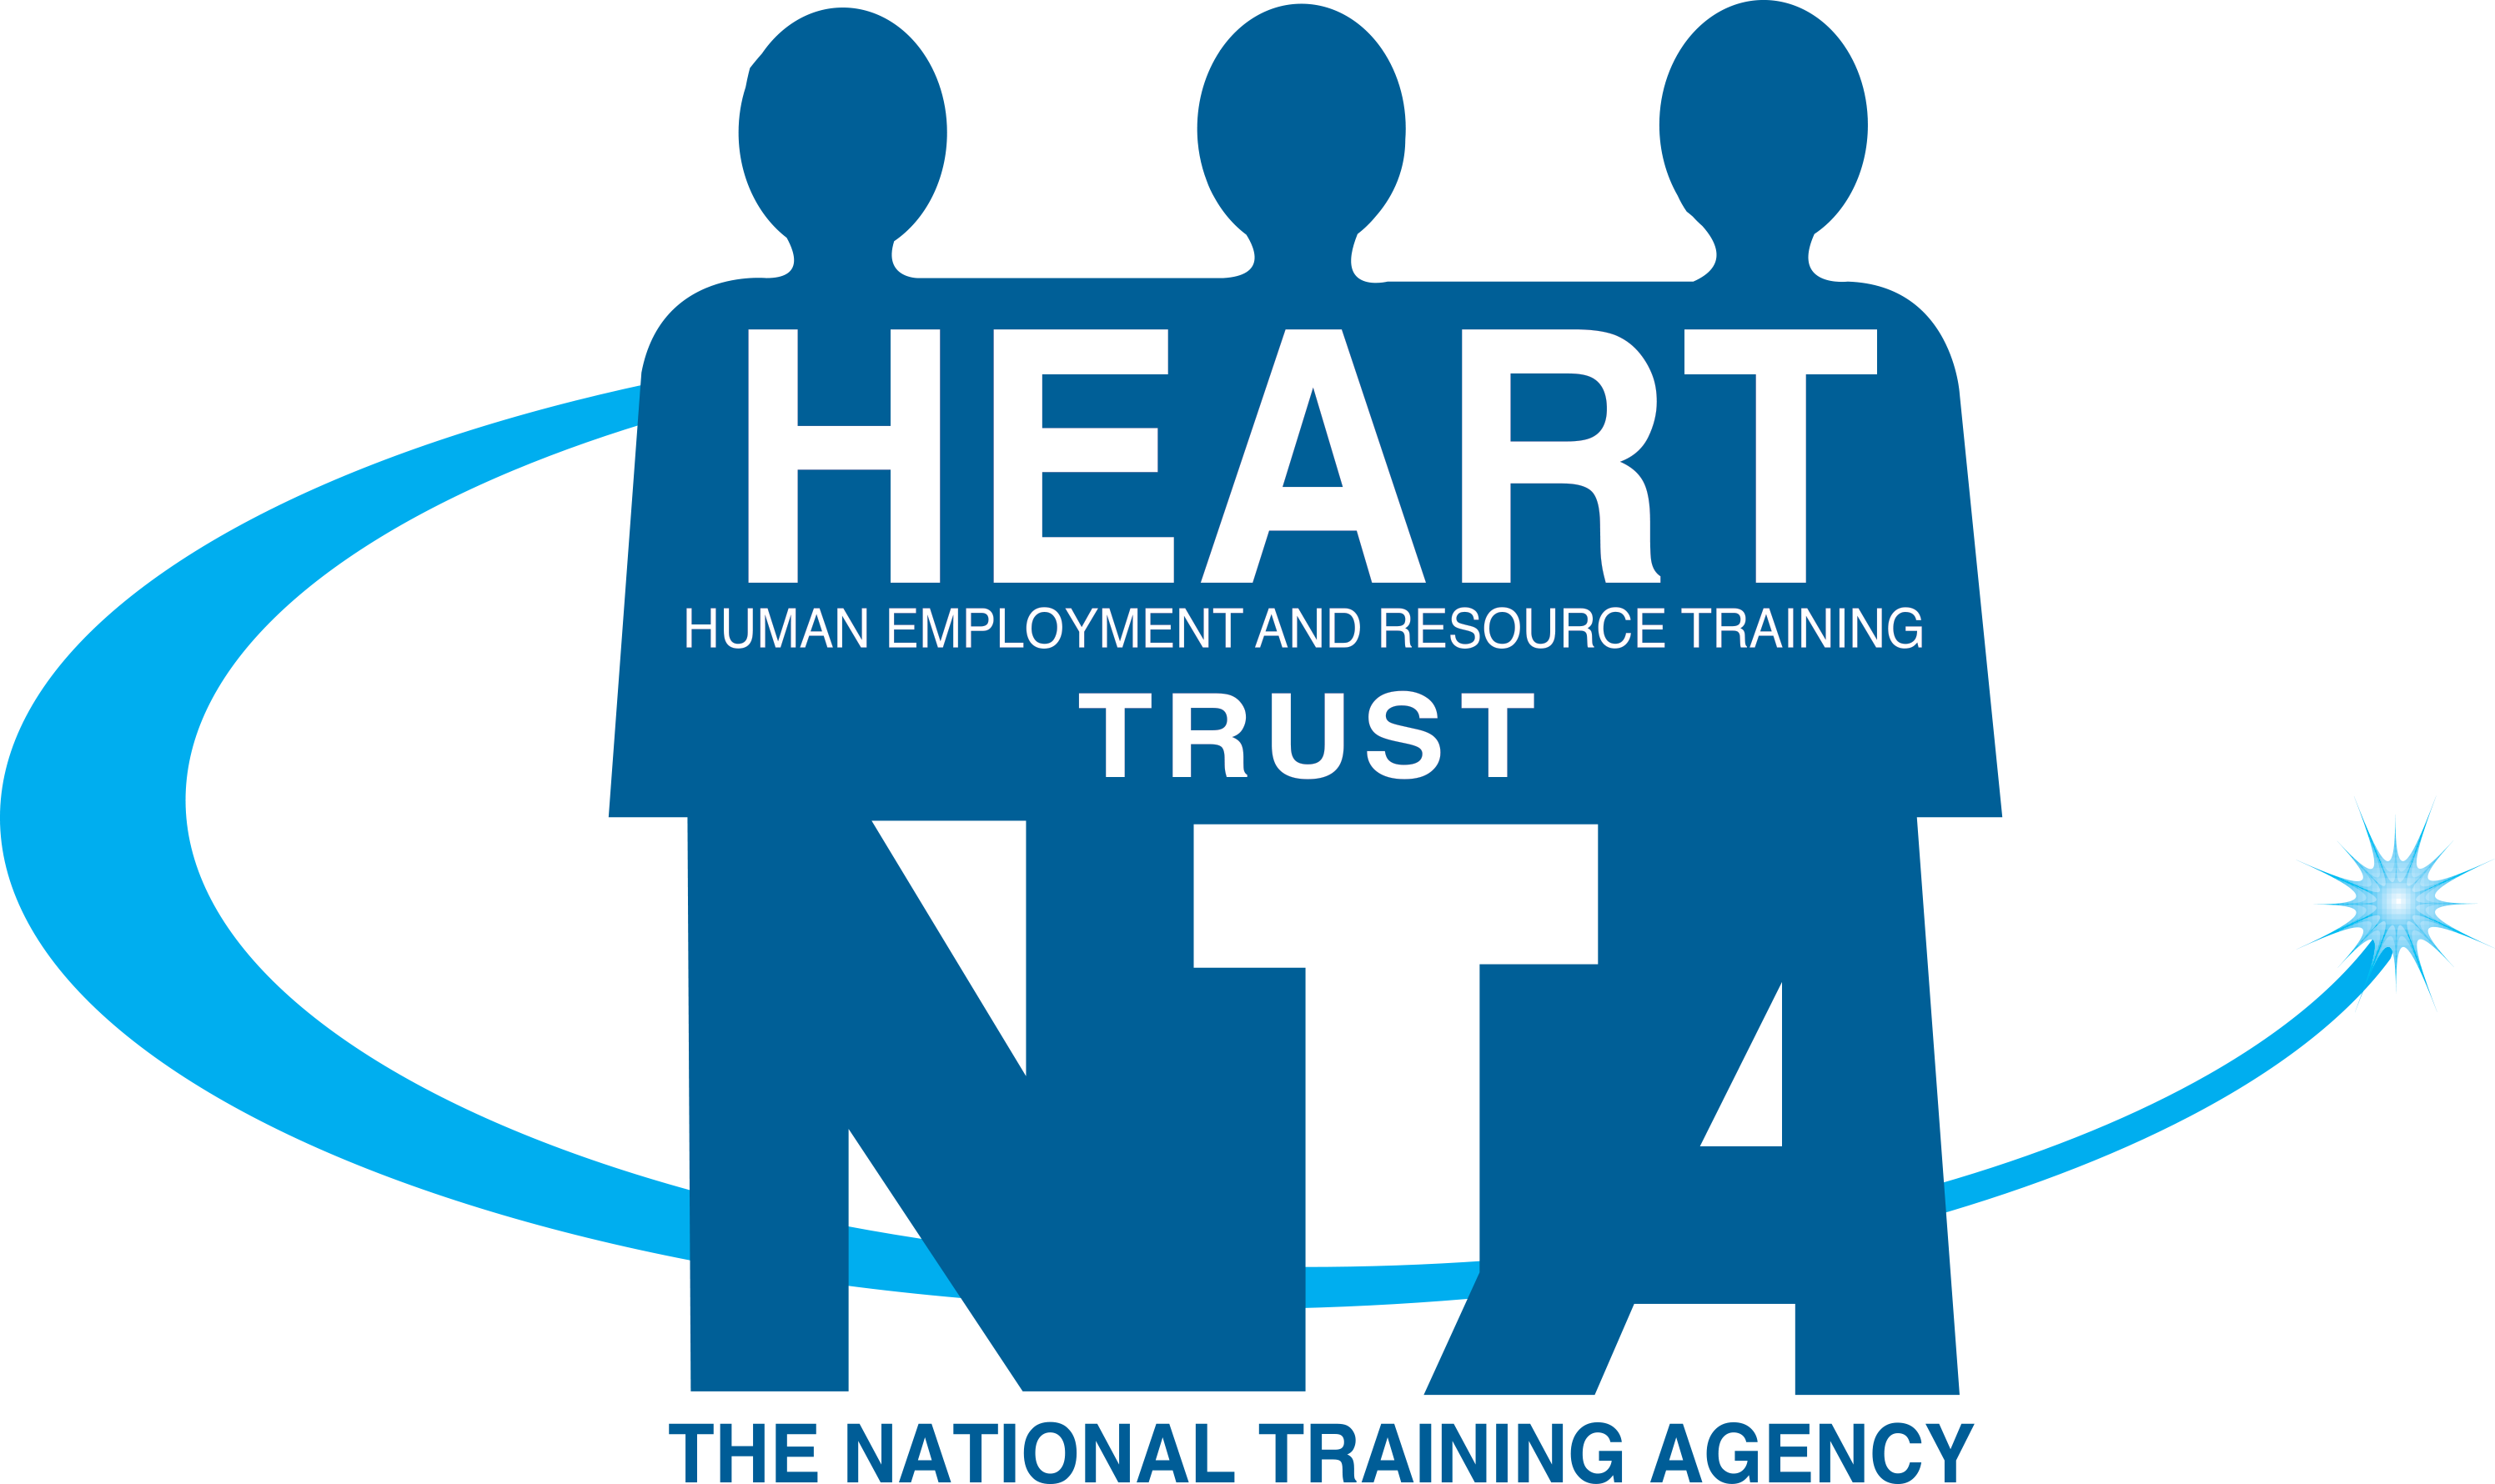 HEART Trust - NTA Jobs in Jamaica